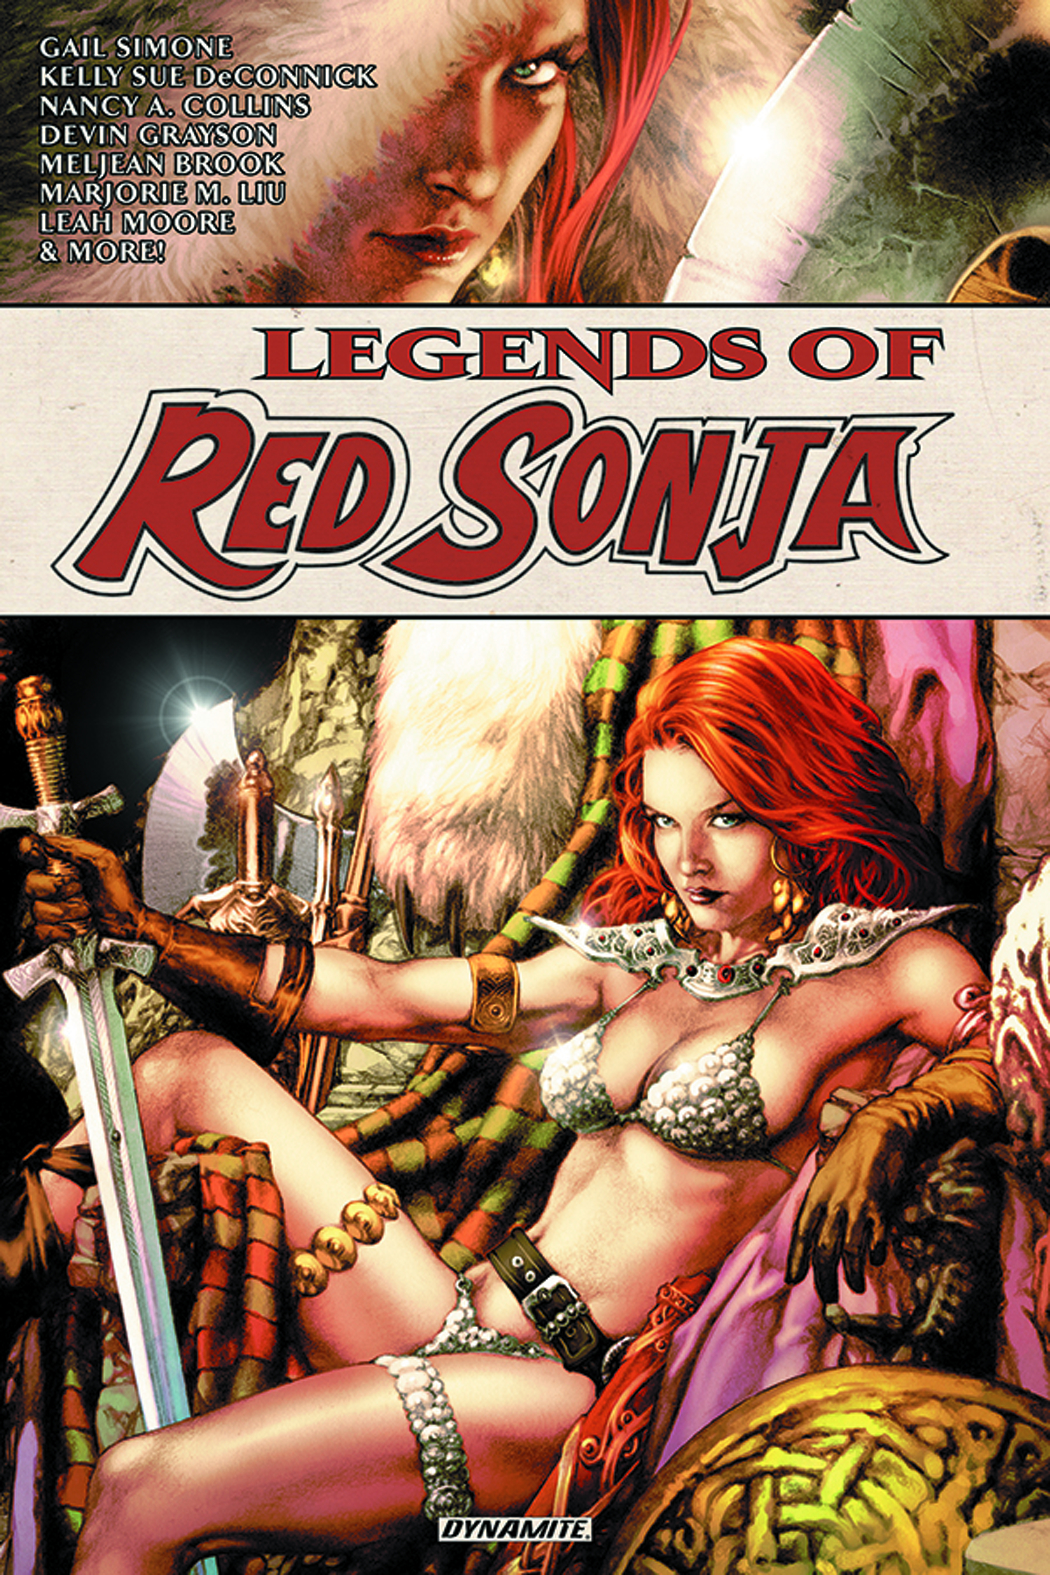 LEGENDS OF RED SONJA TP VOL 01 (O/A)